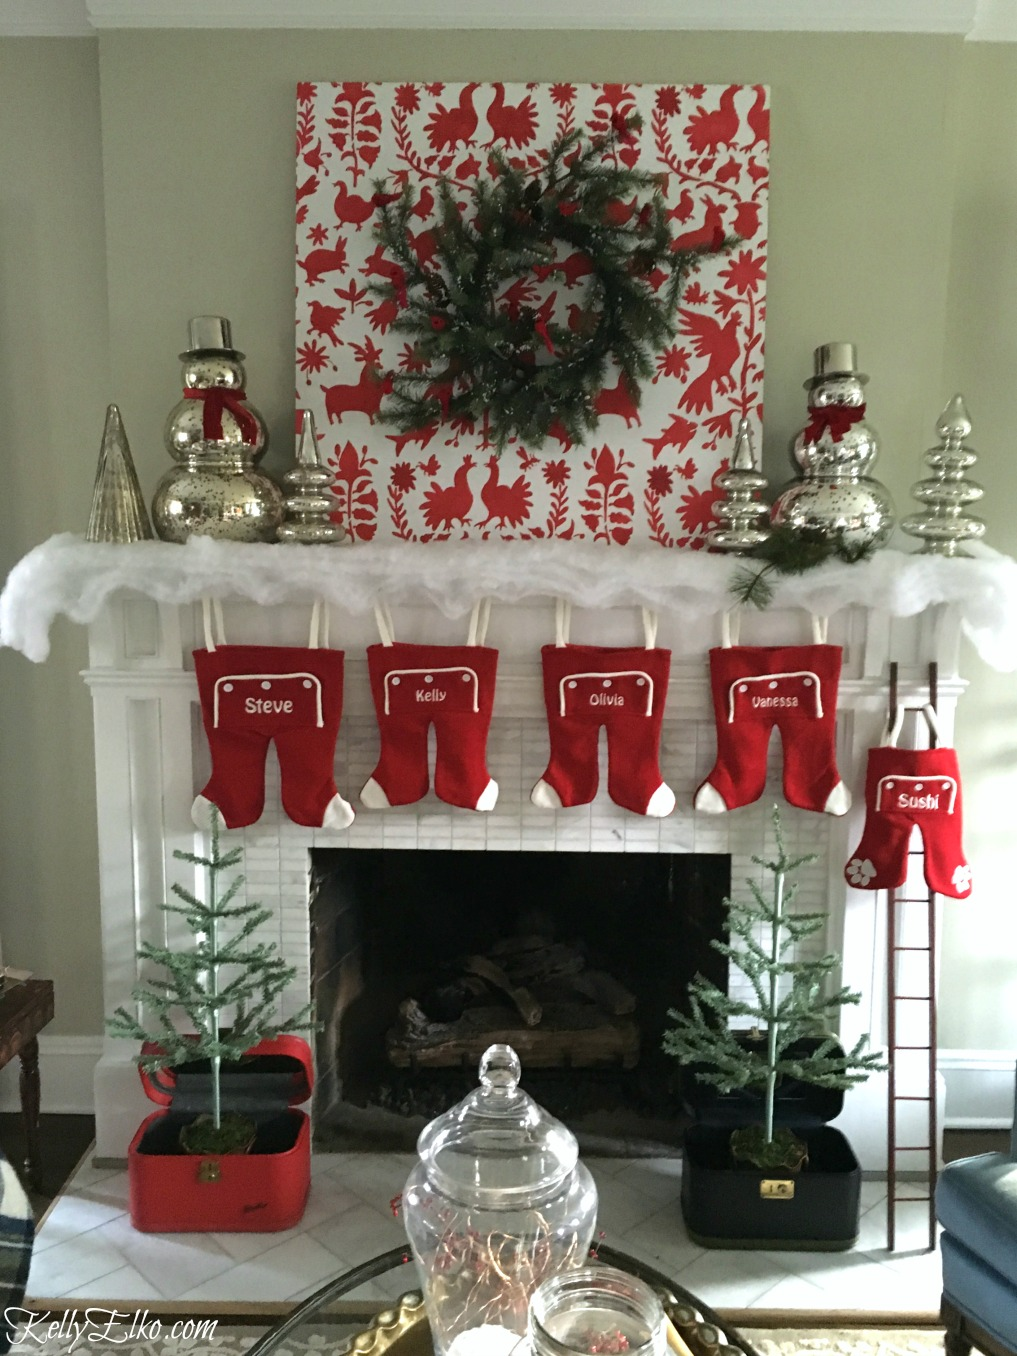 Design Christmas Mantel my christmas mantel fails kelly elko progress see her in photos and the final gorgeous end result